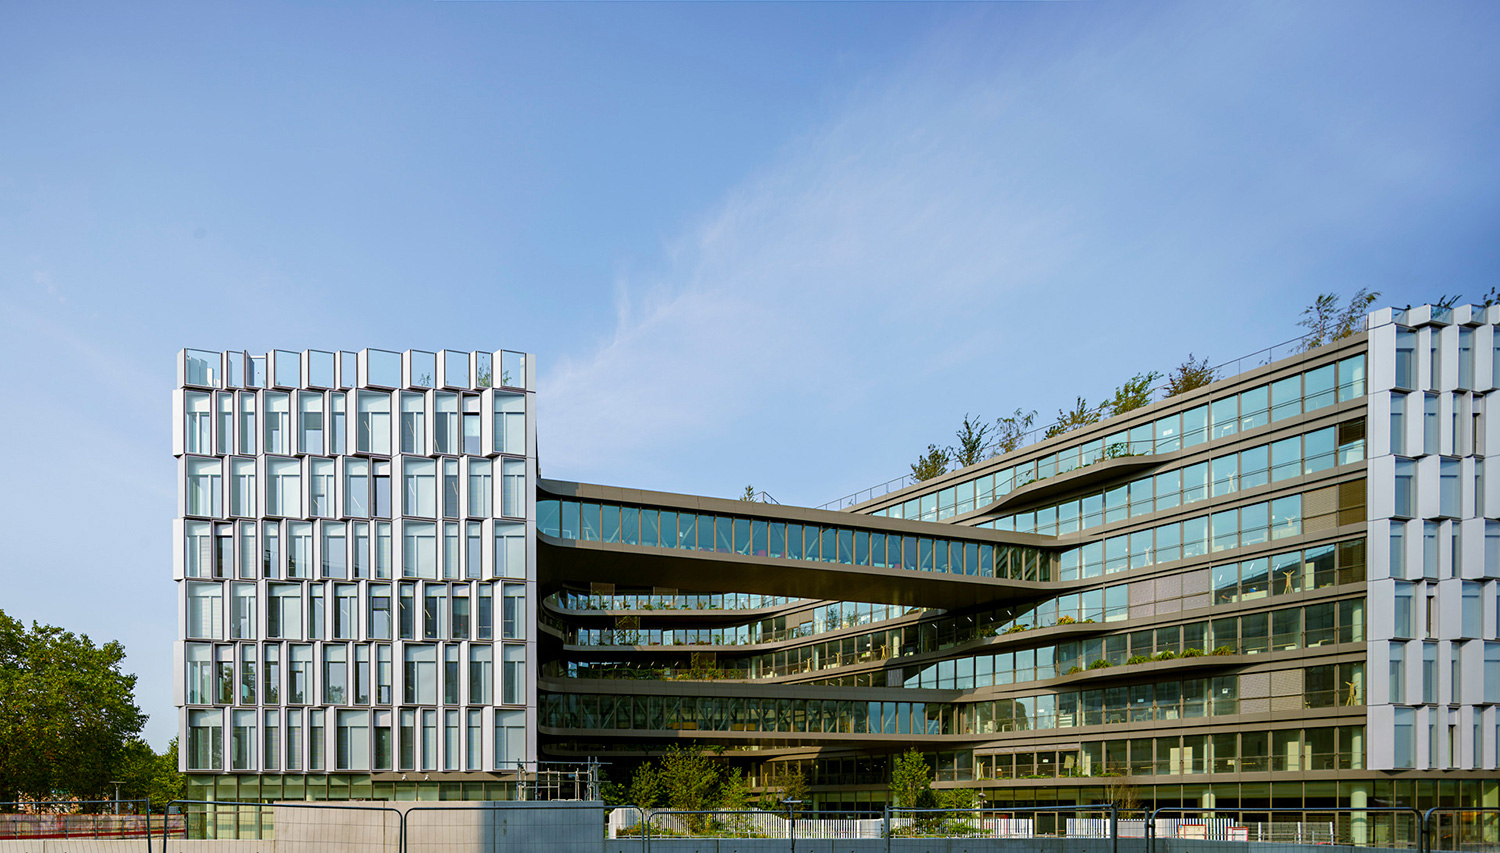 The interior façade gives an open view into the municipality at work © Javier Callejas Sevilla